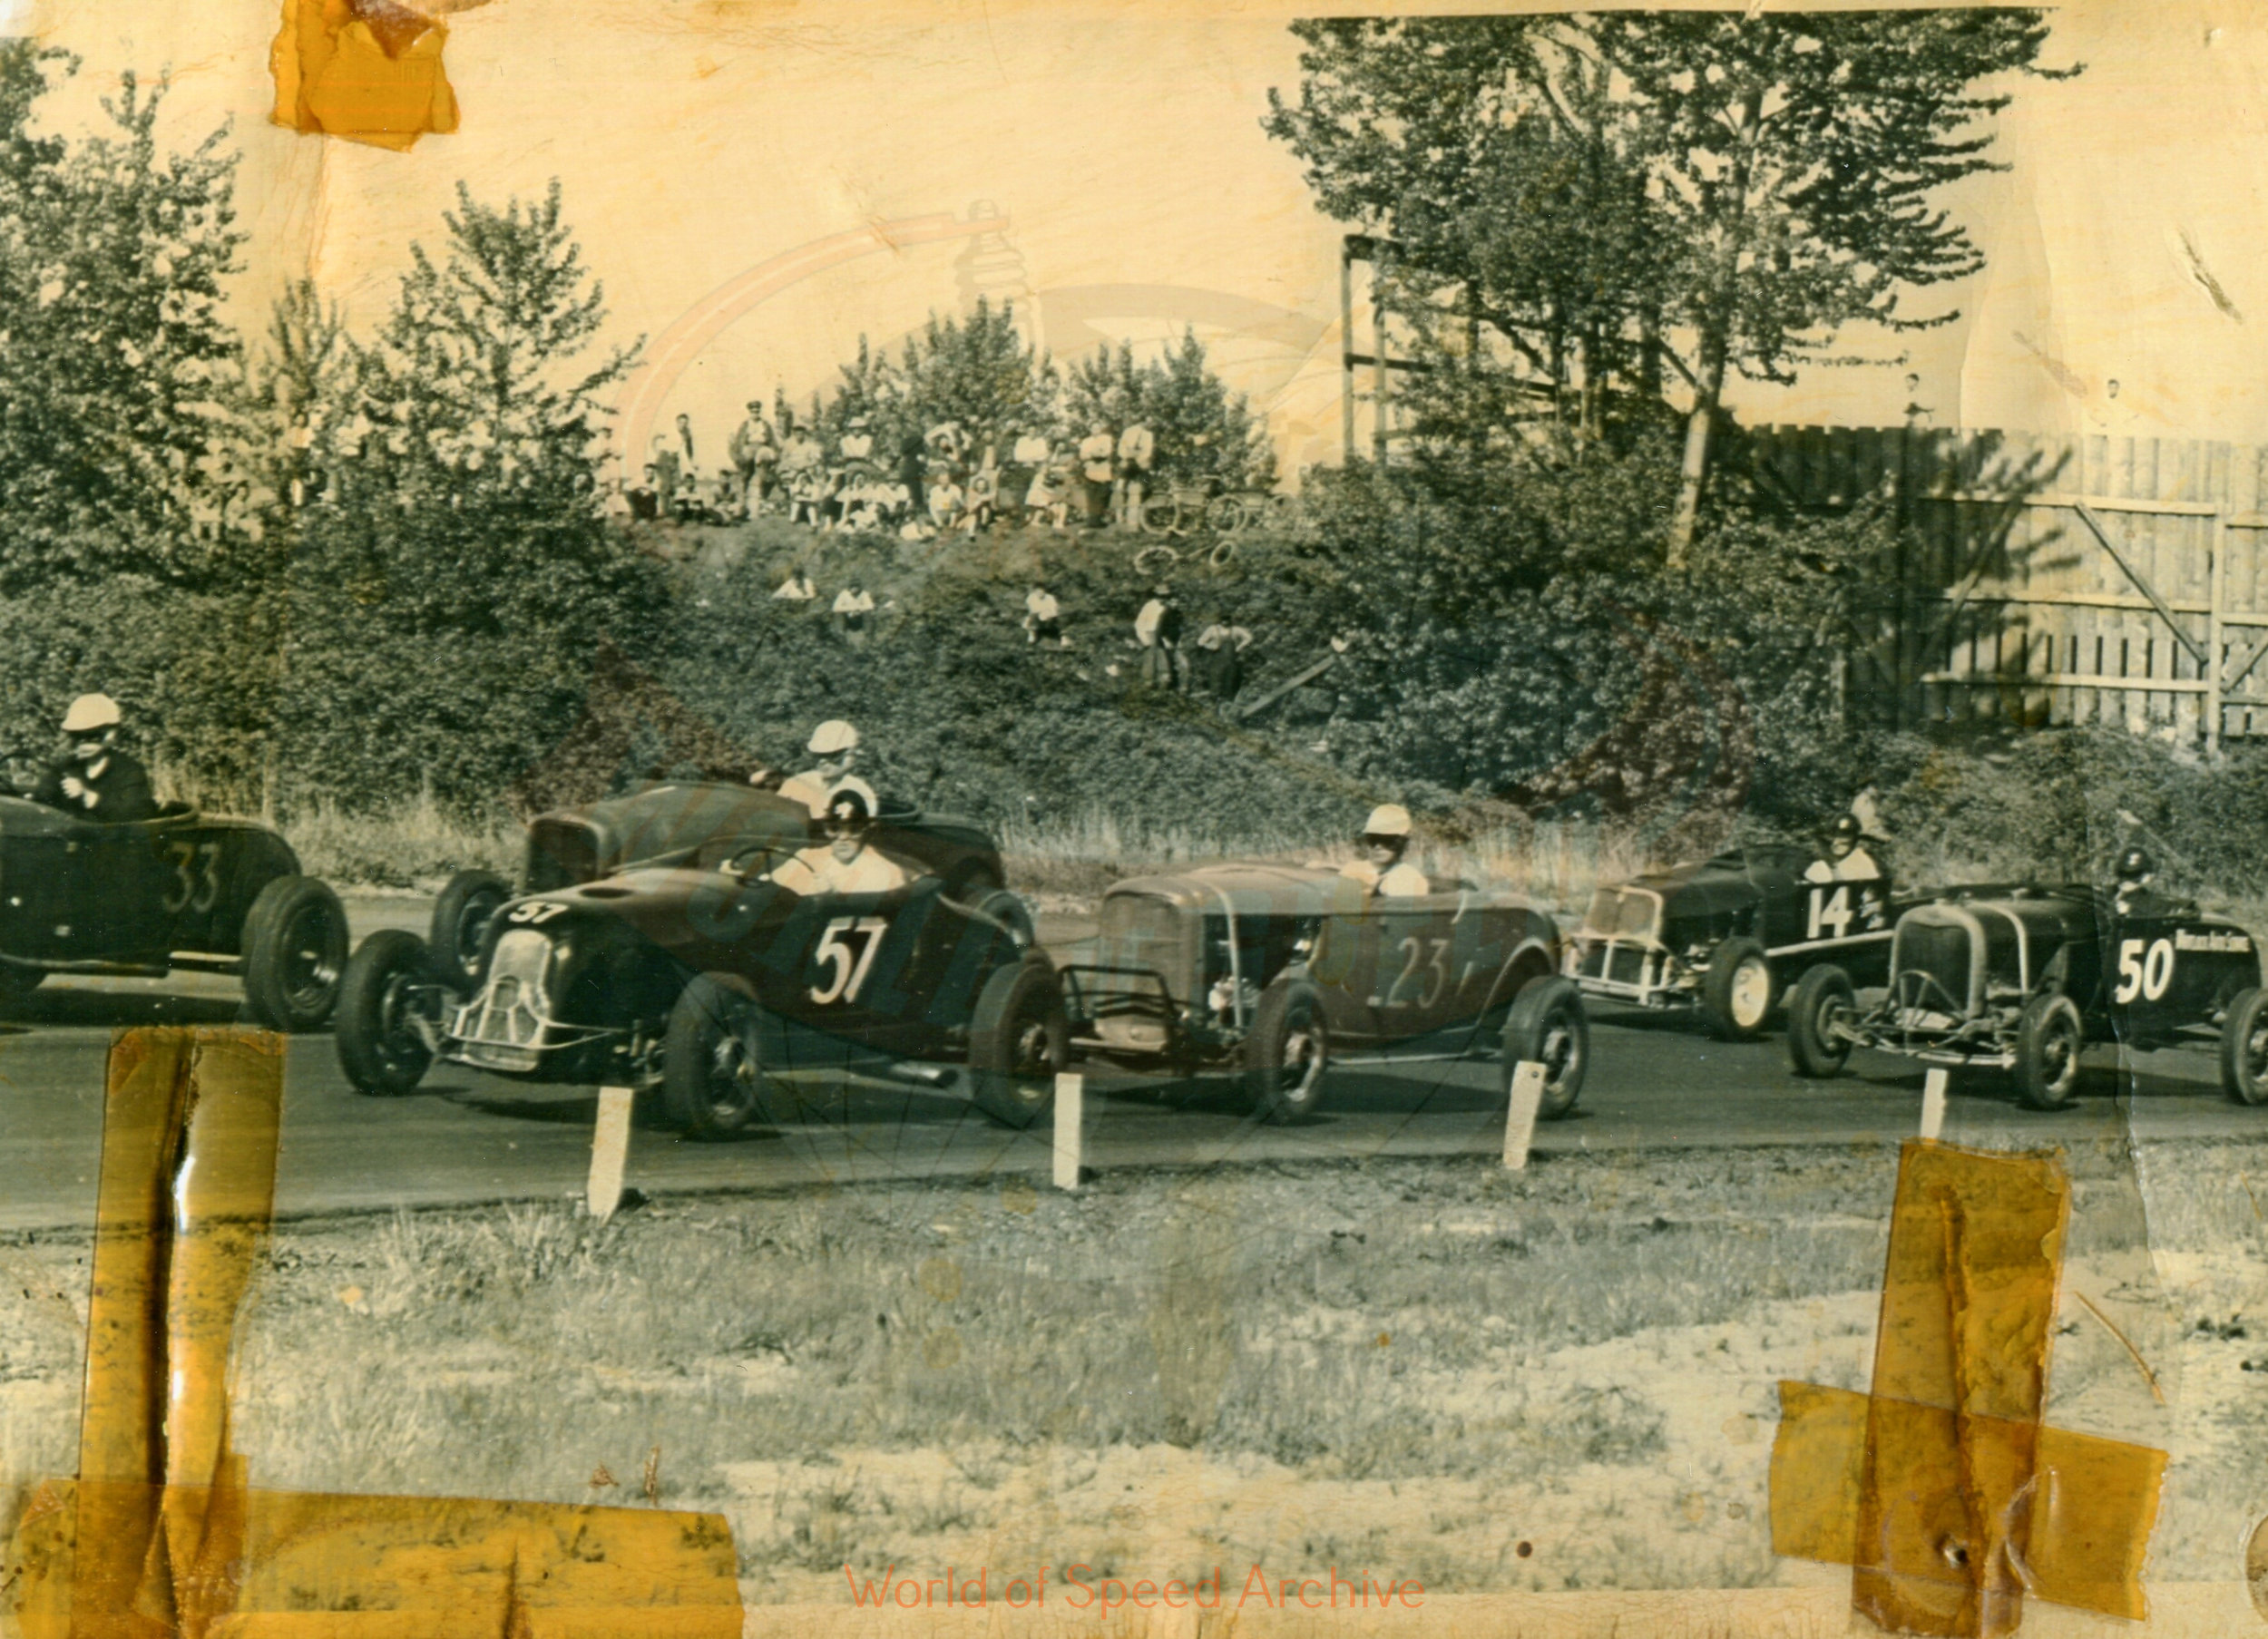 Hildick Photo Collection WOS#5072, BH007  Received submission: # 57 Don Moore in Al Reamer's car; #33 Jim Martin in Tom Storey's car; #23 Randy Francis in his own car; #1 Max Humm; #50 Dick Boubel #14 either Phil Foubert, Dick Martin, or Bob Gregg; Portland Speedway, probably 1946